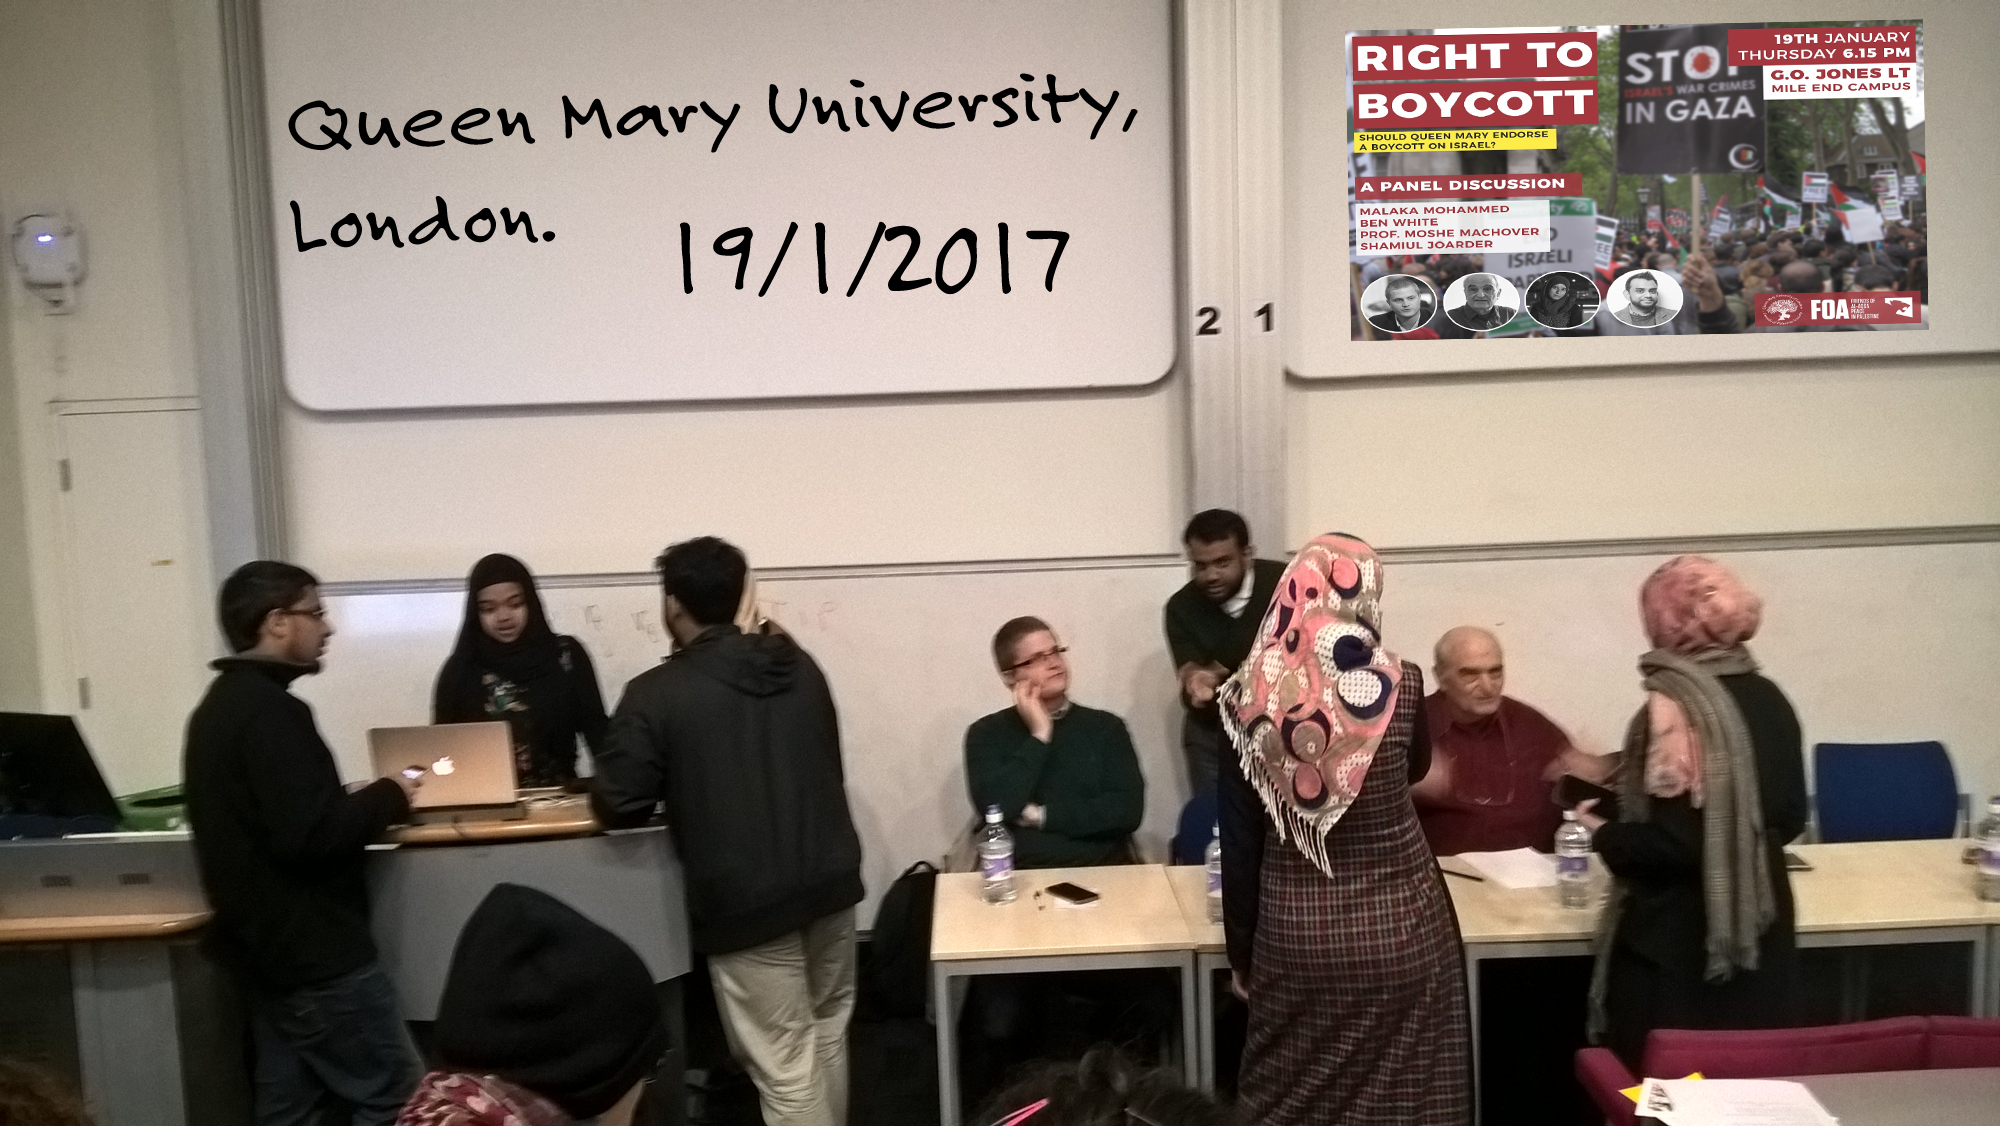 Helpless Before The Hatred At Queen Mary University Of